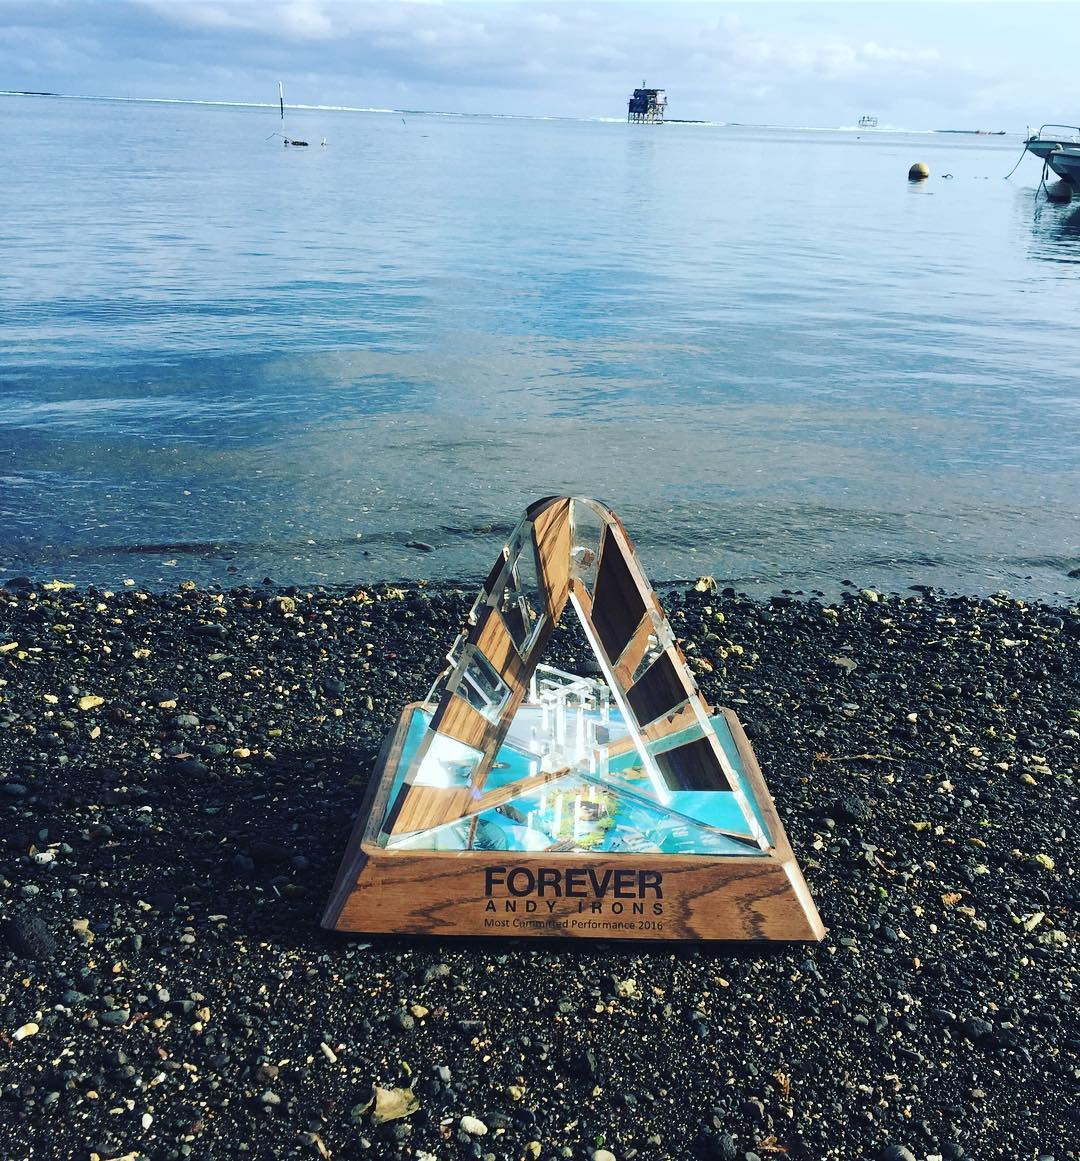 Who will win the coveted Andy Irons Most Committed Performance Award for 2016? #BillabongProTahiti @wsl #AIForever